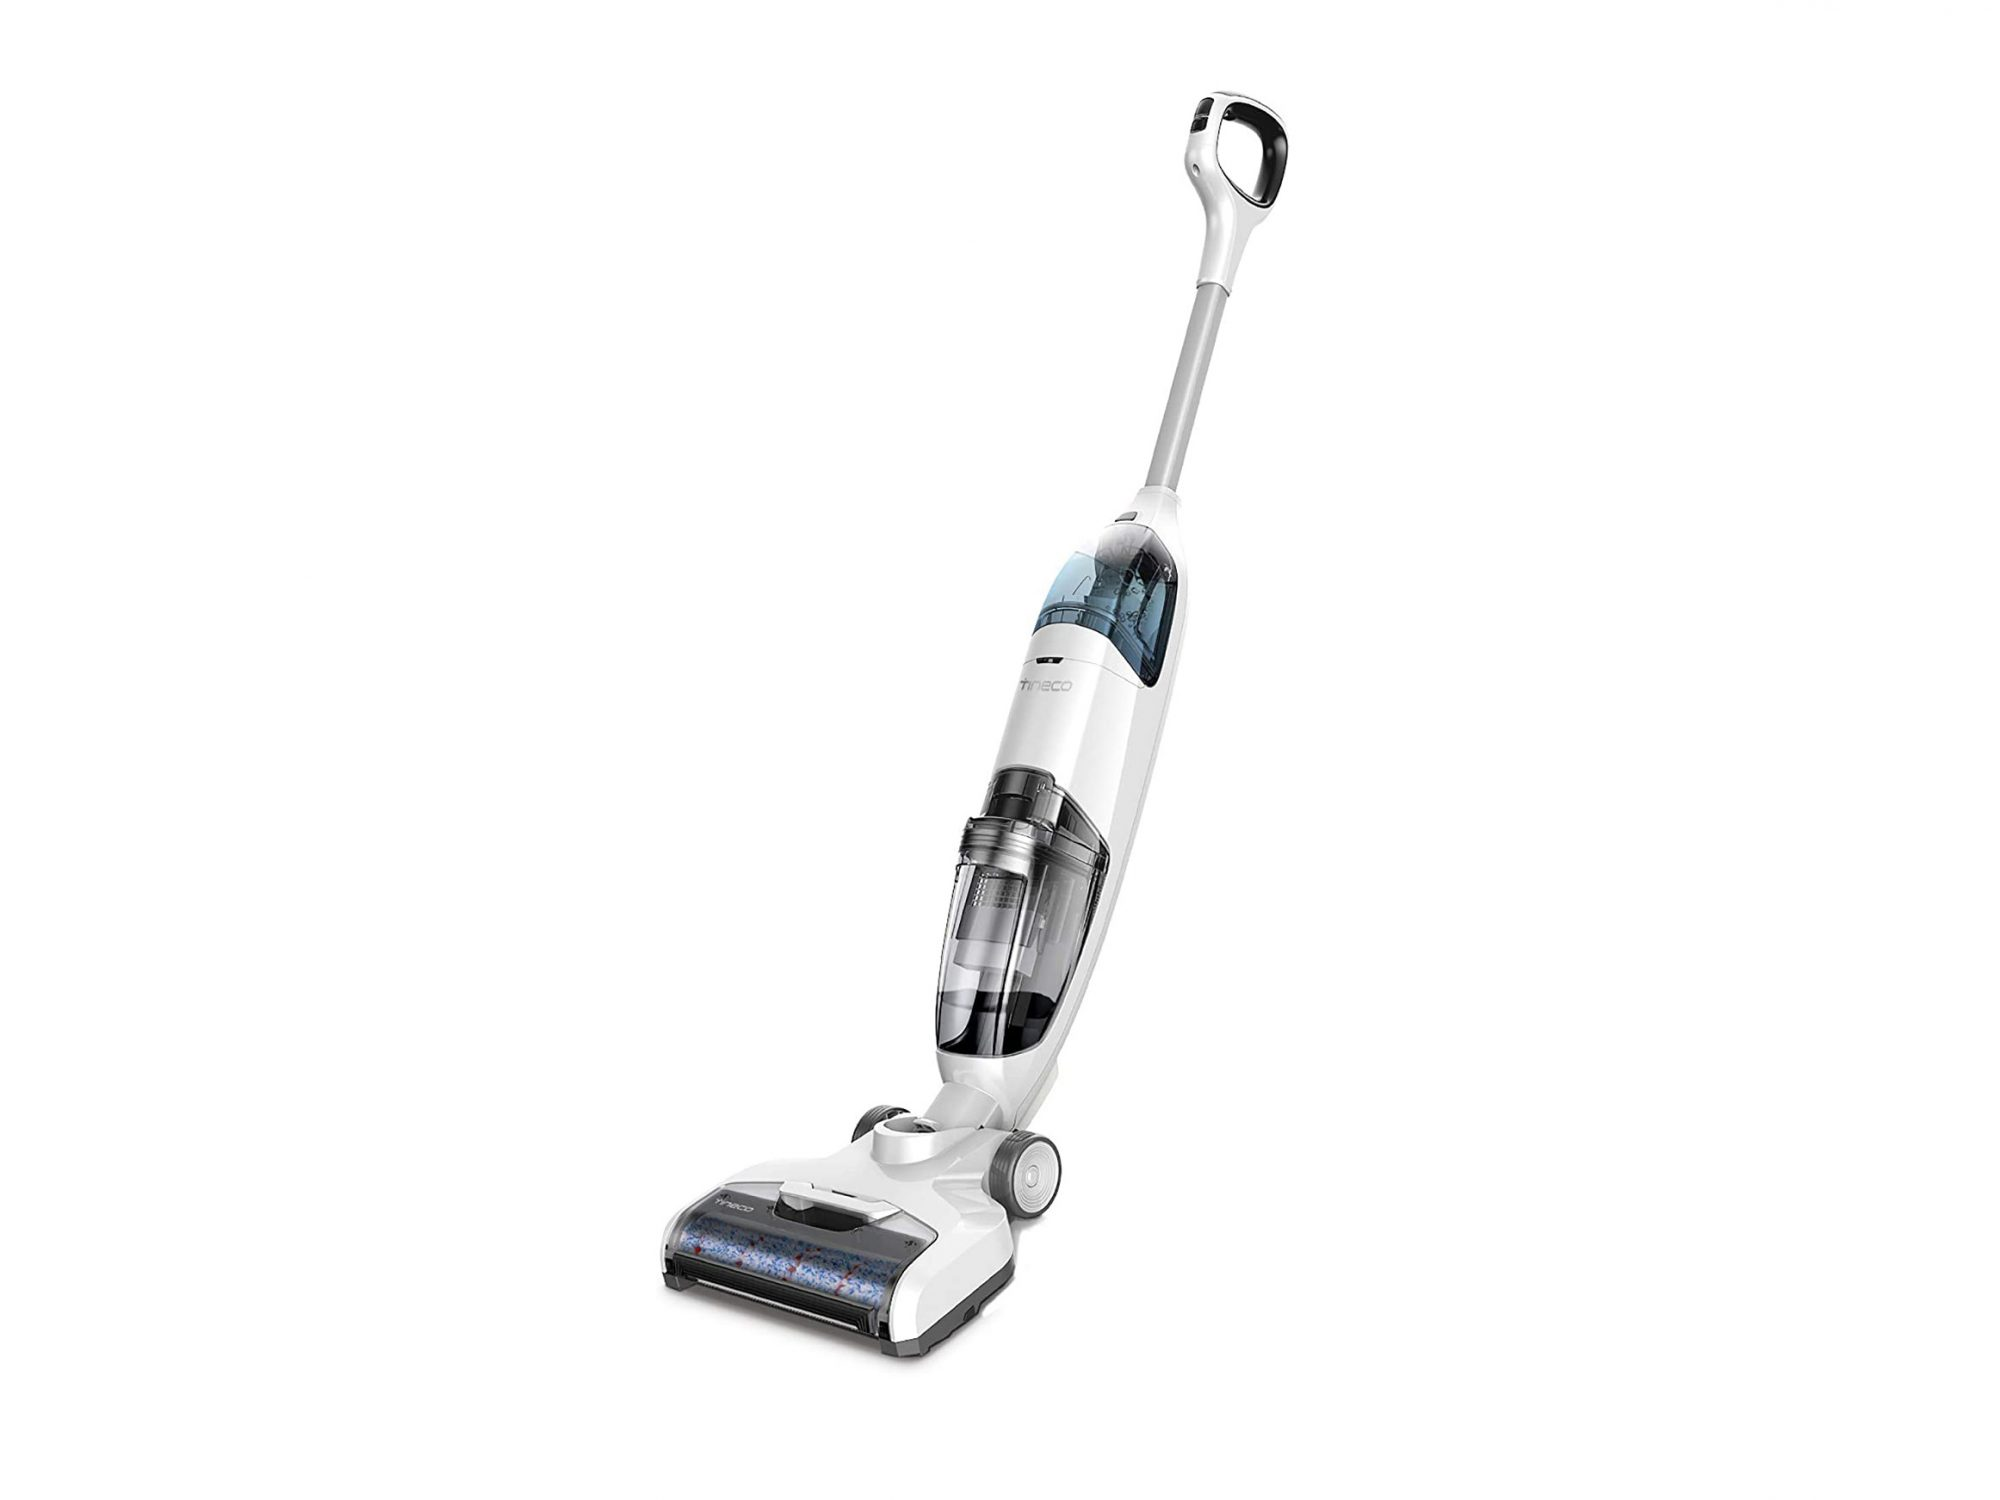 Tineco iFLOOR Cordless Wet Dry Vacuum Cleaner and Mop